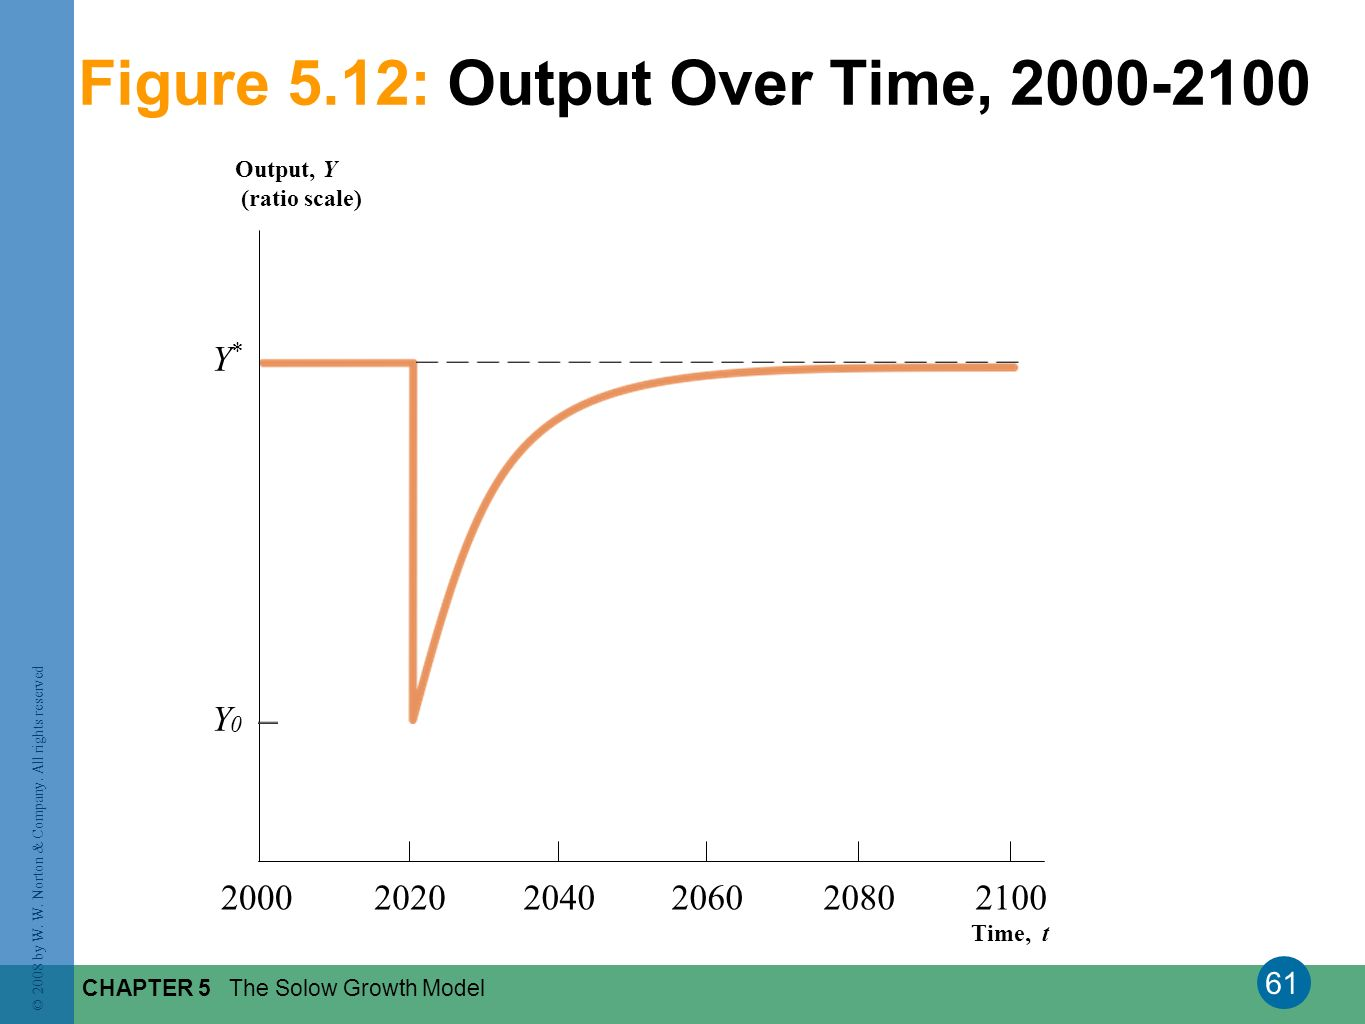 Figure 5.12: Output Over Time, 2000-2100